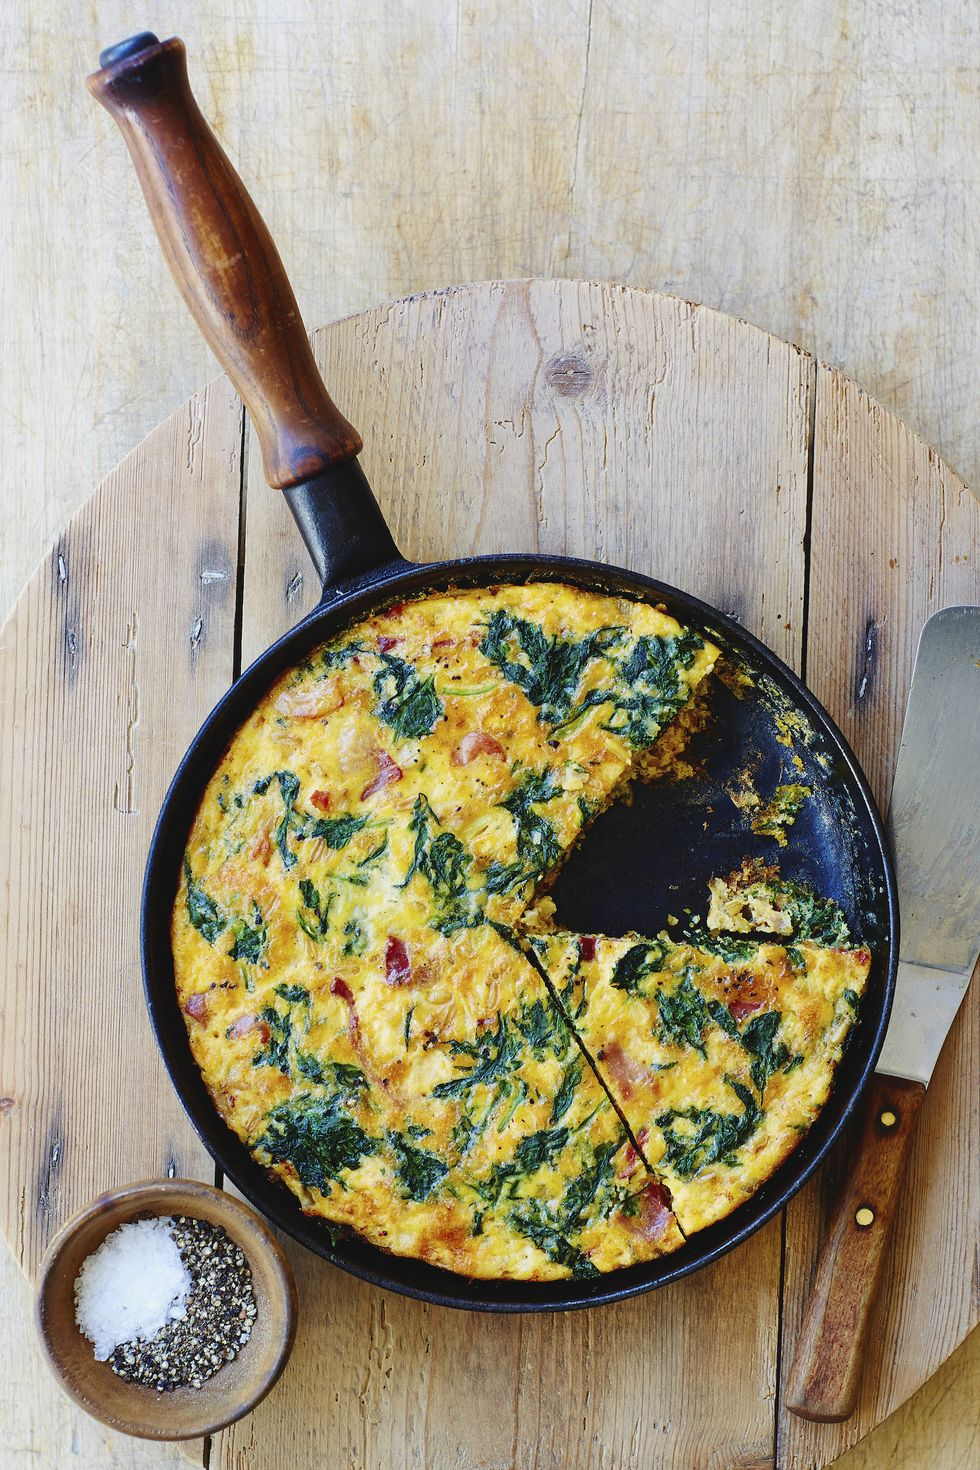 Chive And Goat Cheese Frittata